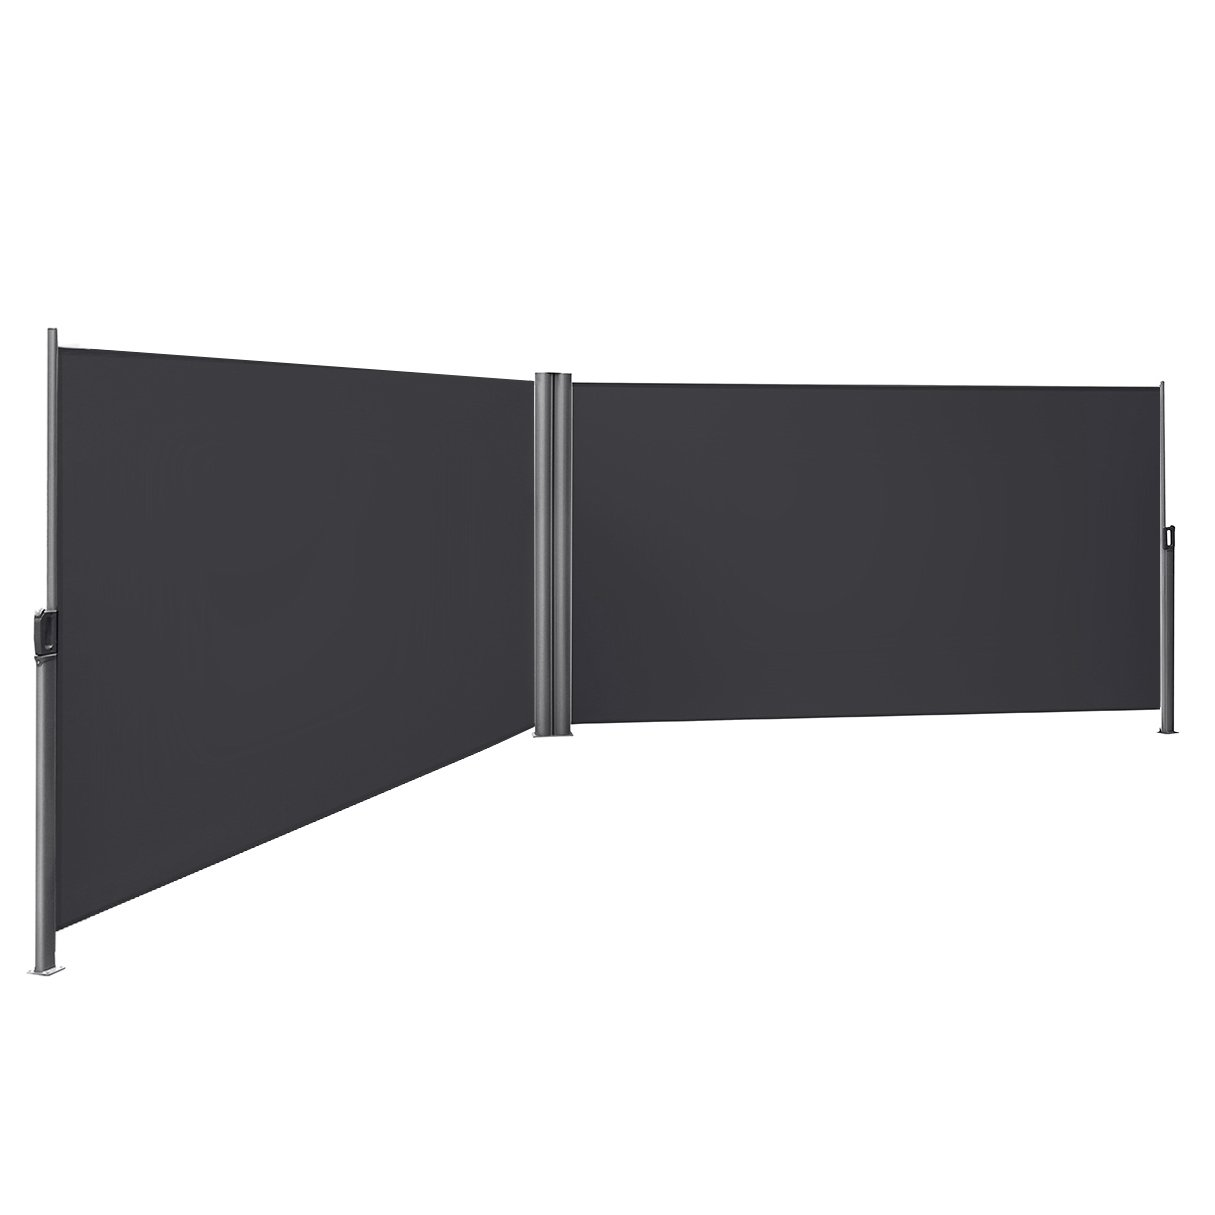 SONGMICS 236 2/8 L x 70 7/8 H Double Side Awning Privacy Screen Retractable Patio Blind Privacy Divide with Sturdy Aluminum Exterior Waterproof for Garden Terrace Porch Smoky Gray UGSA360G by SONGMICS